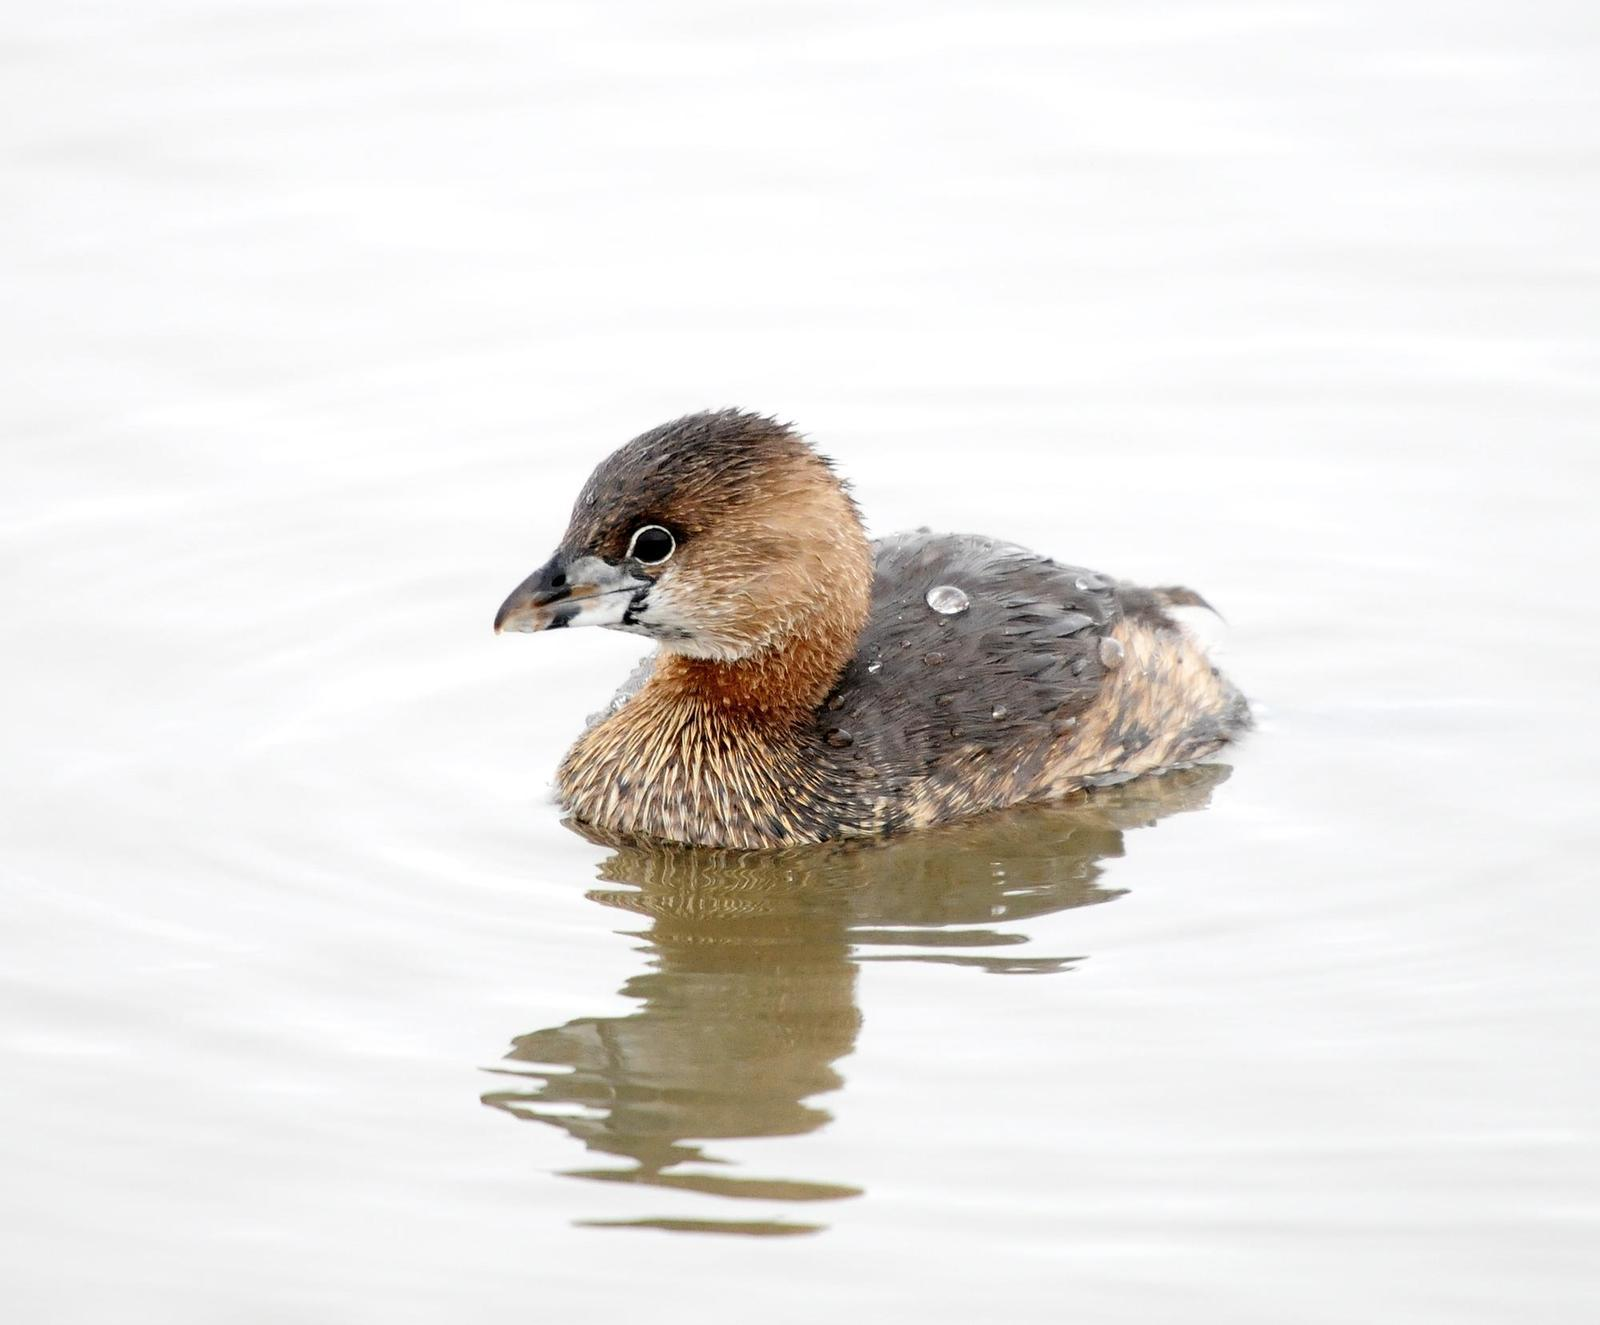 Pied-billed Grebe Photo by Steven Mlodinow